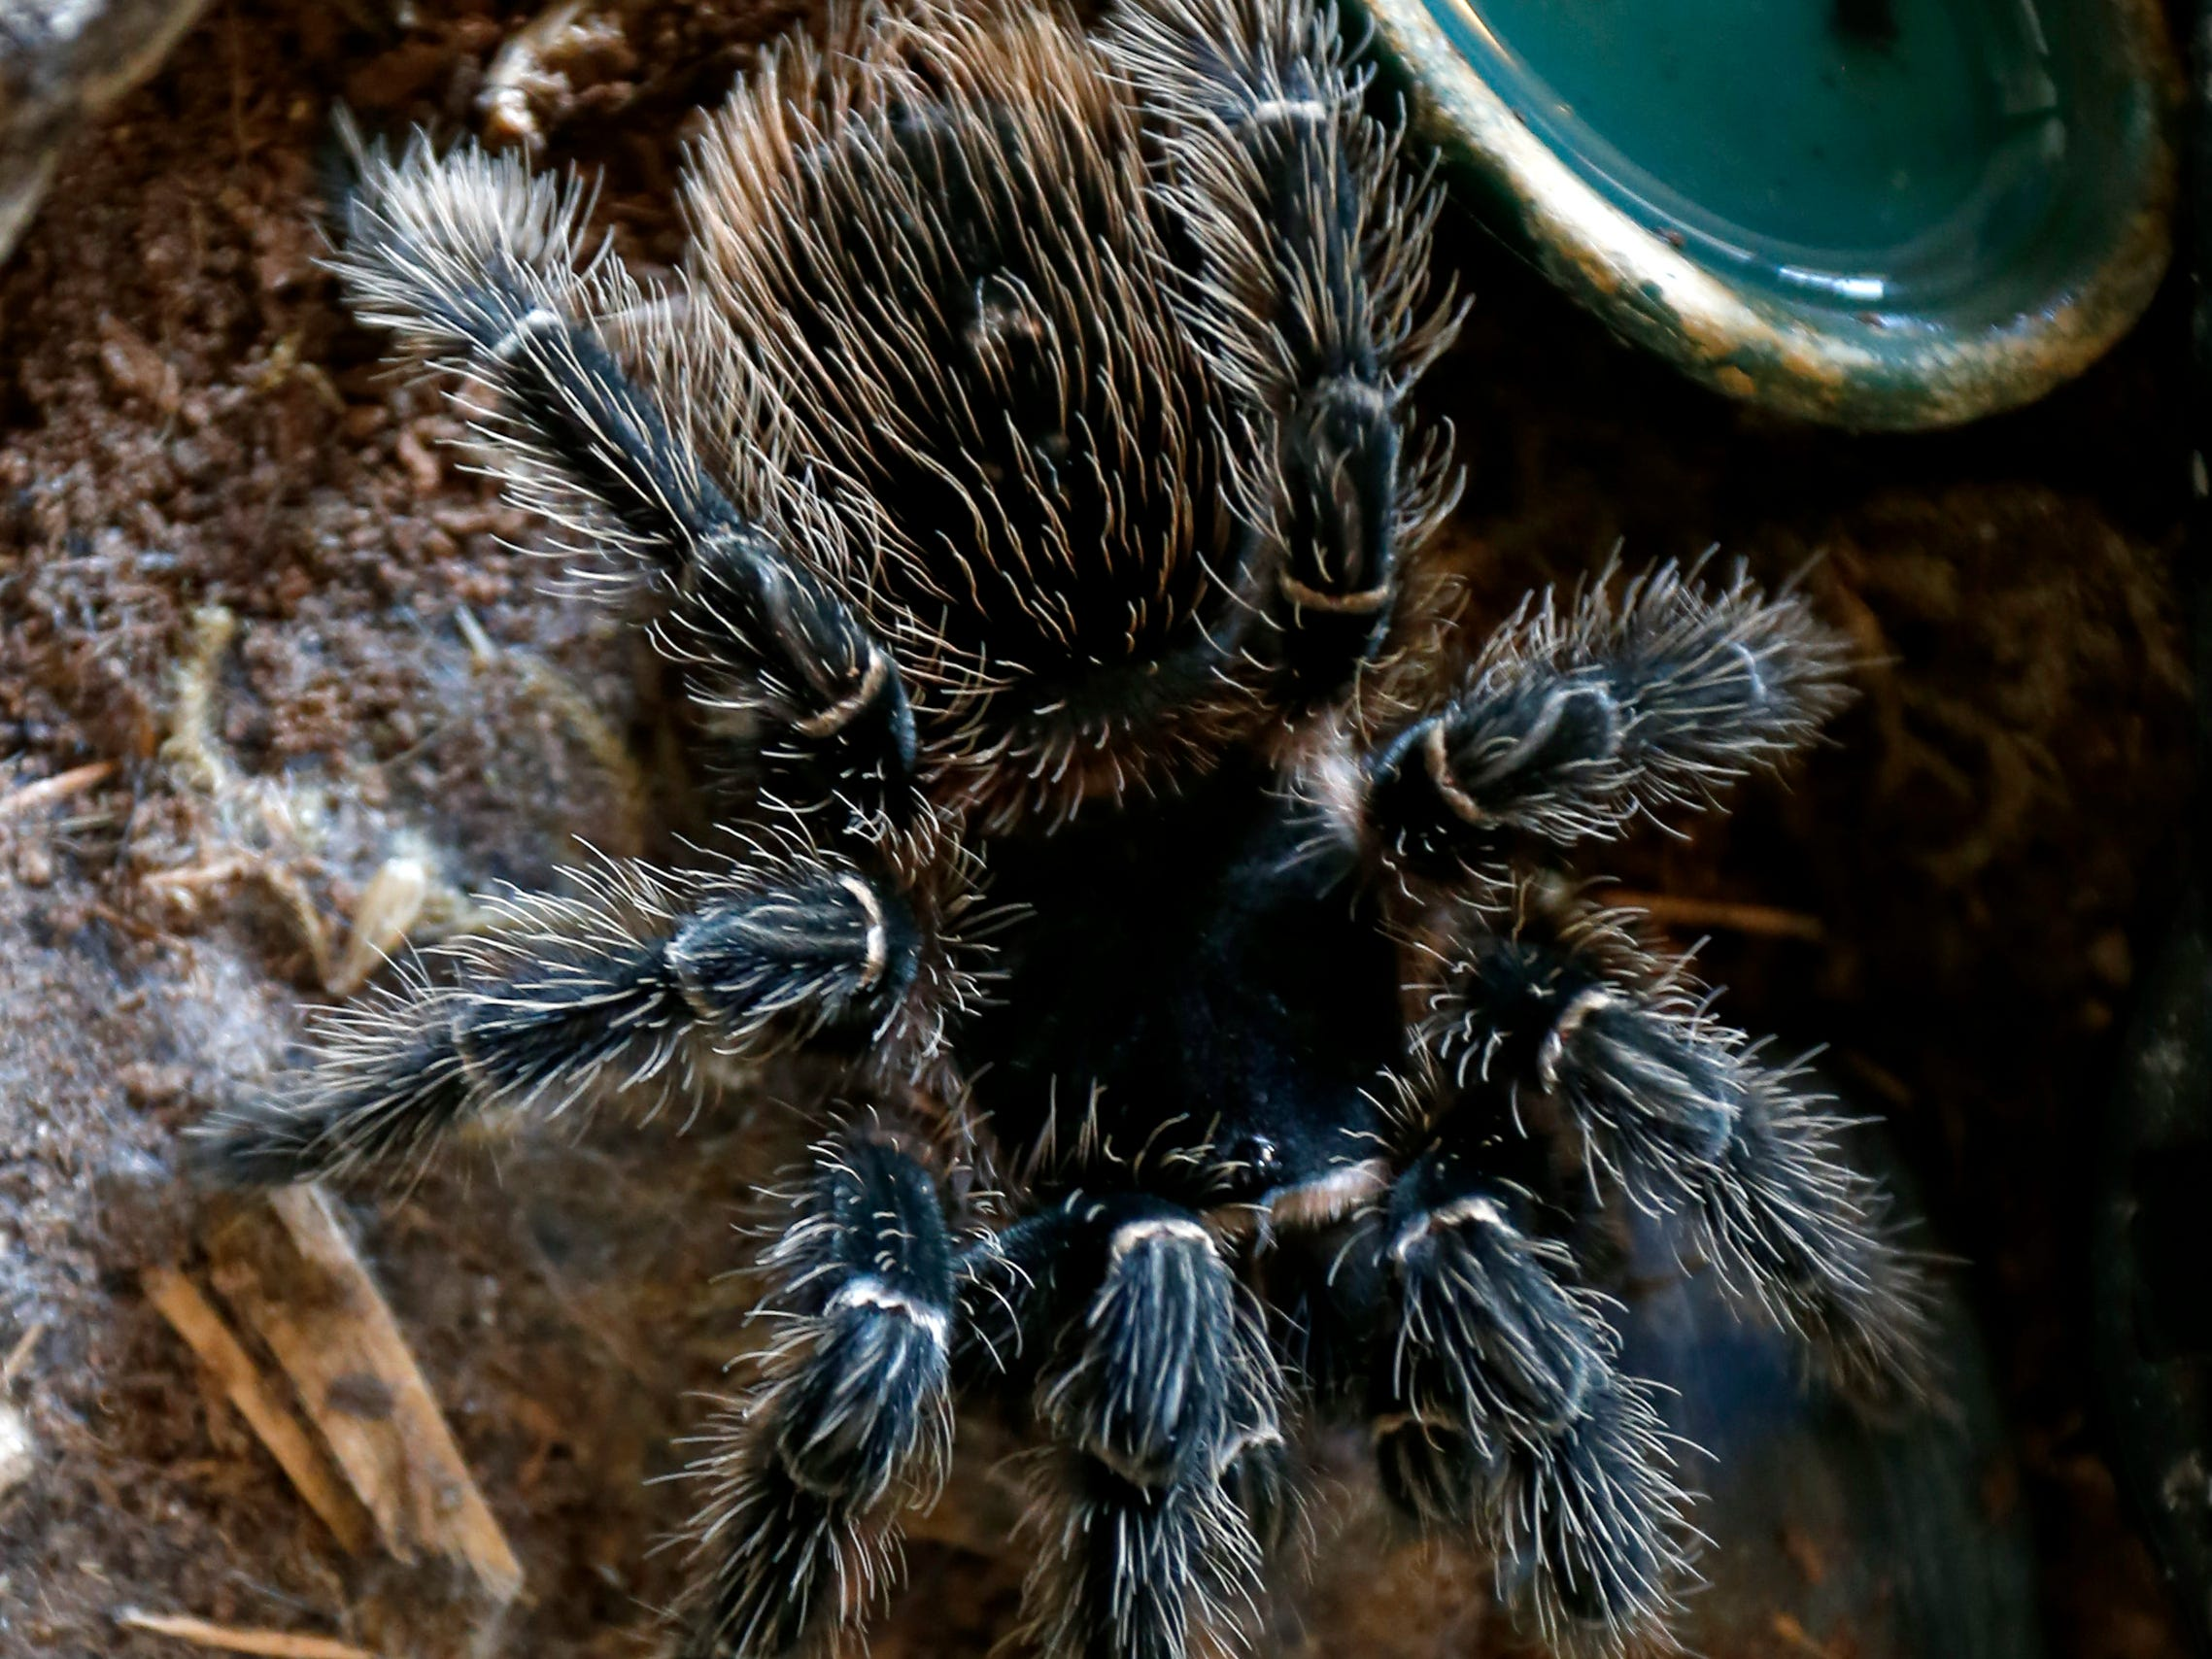 The Brazilian salmon pink birdeater is a large tarantula found in eastern Brazil and can have a leg span of up to up to 10 inches.